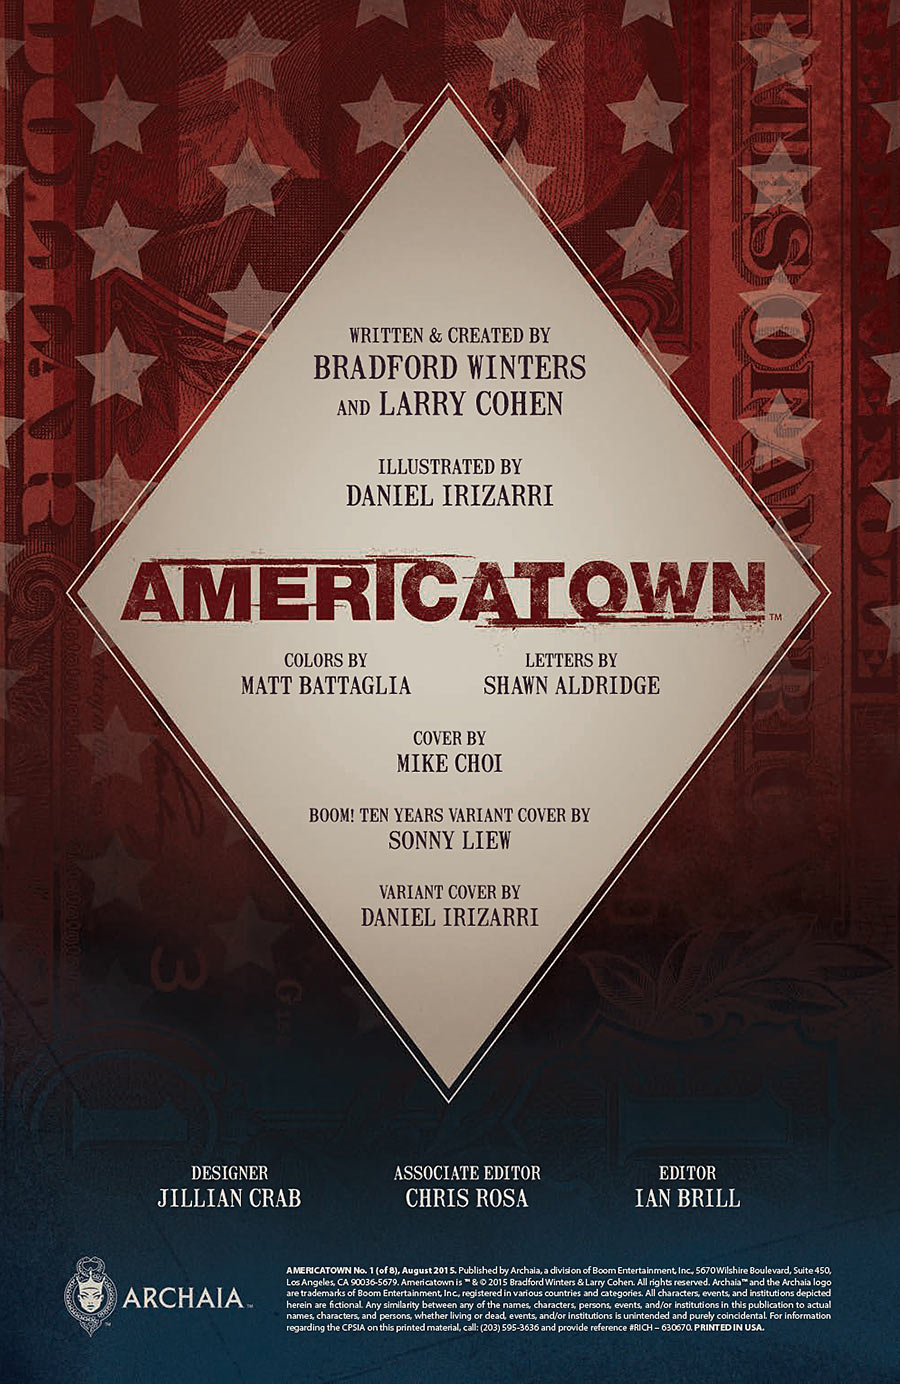 Americatown-001-PRESS-2-0cd6f.jpg